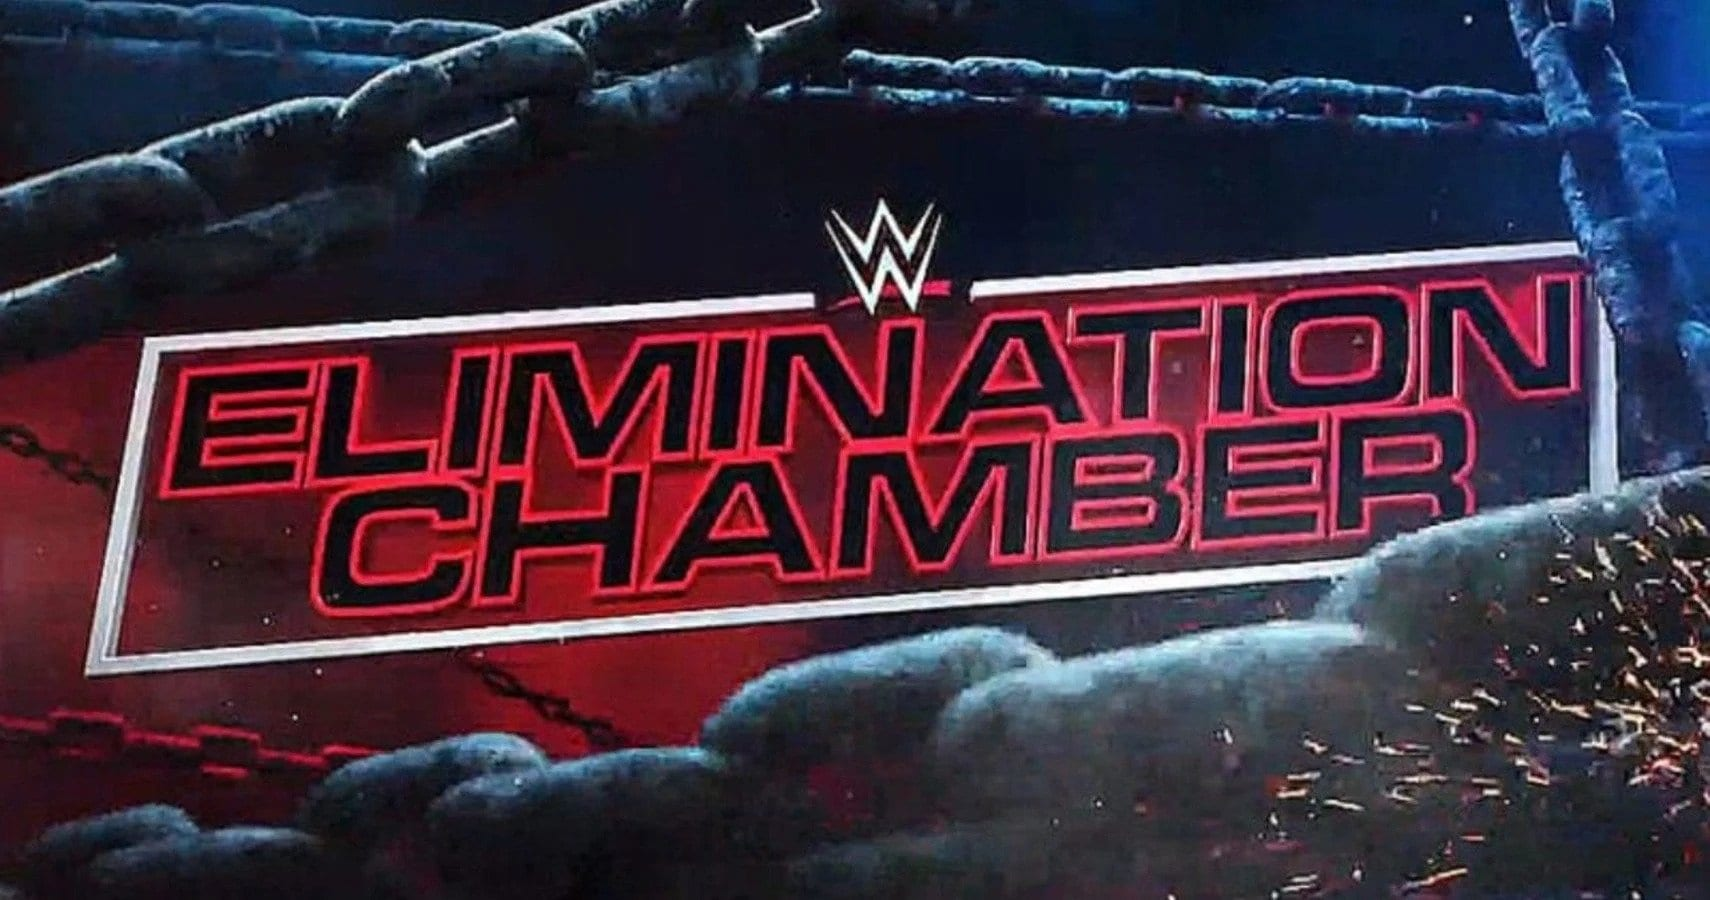 Top Stars Qualify For SmackDown Chamber Match At WWE Elimination Chamber